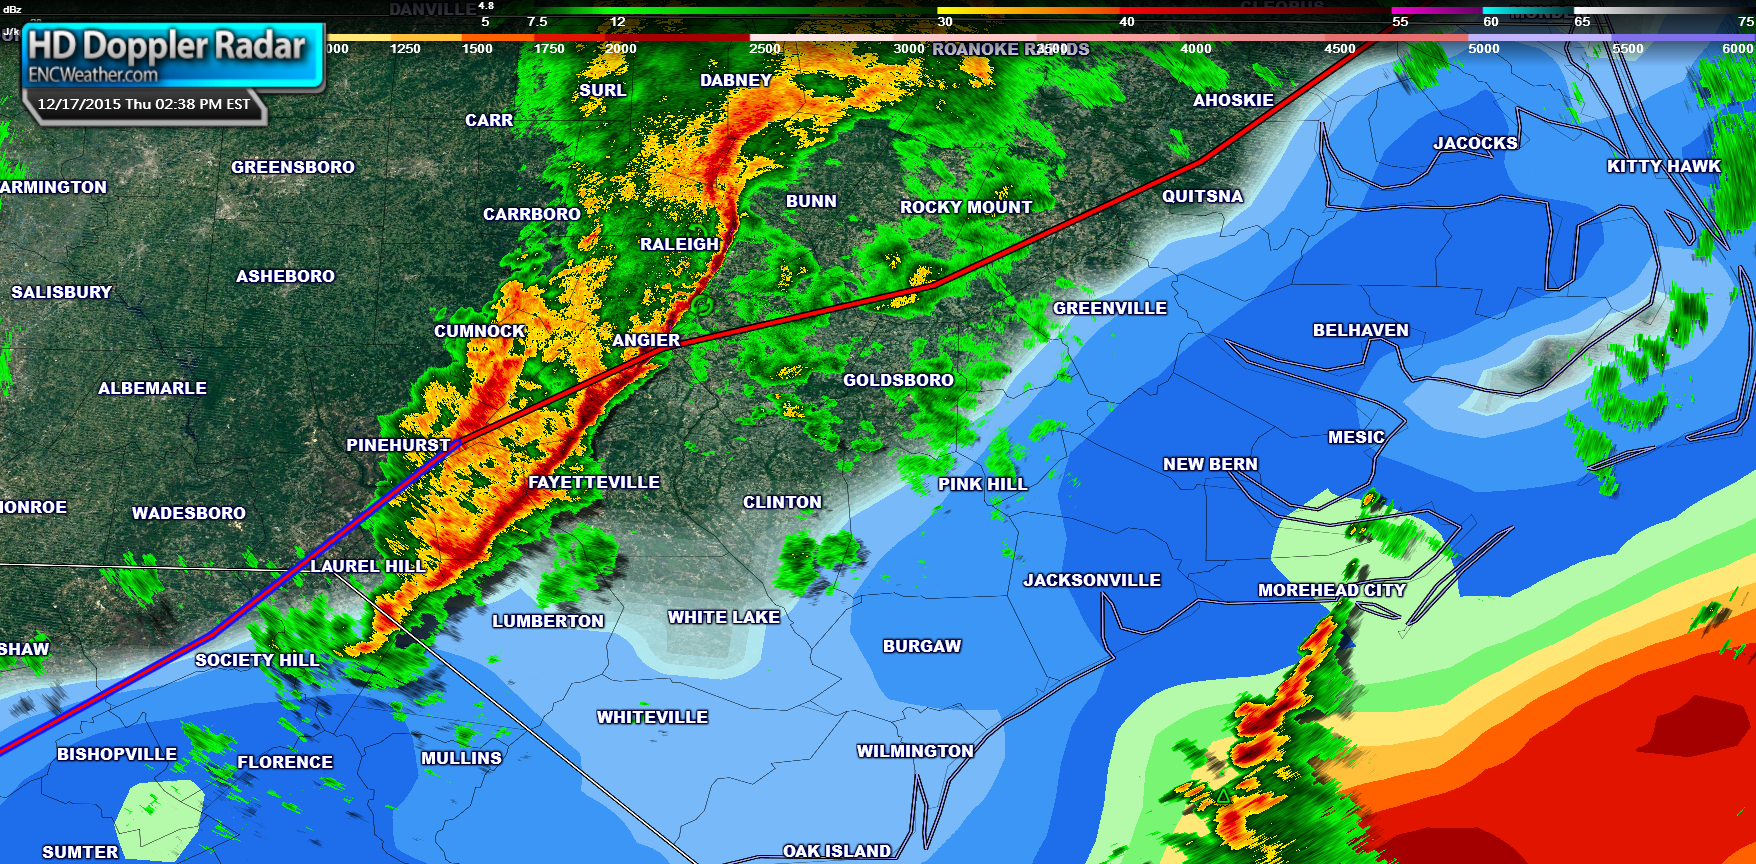 Radar combined with CAPE values for ENC. The red line marks the location of the warm front.